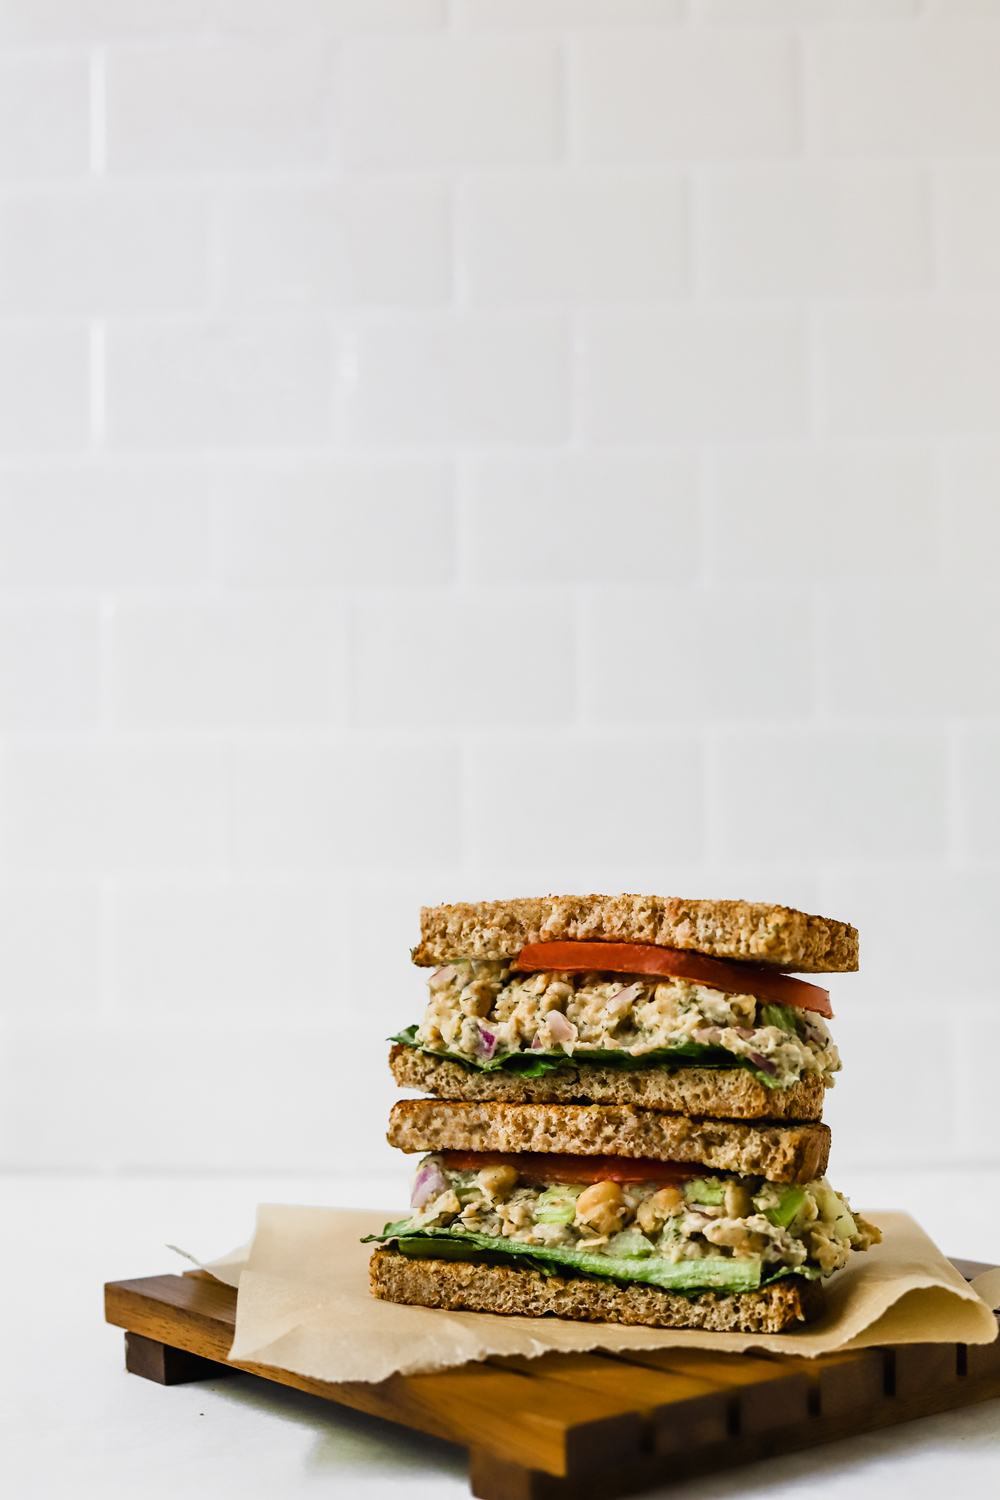 Vegan chickpea salad sandwich cut in half and stacked.